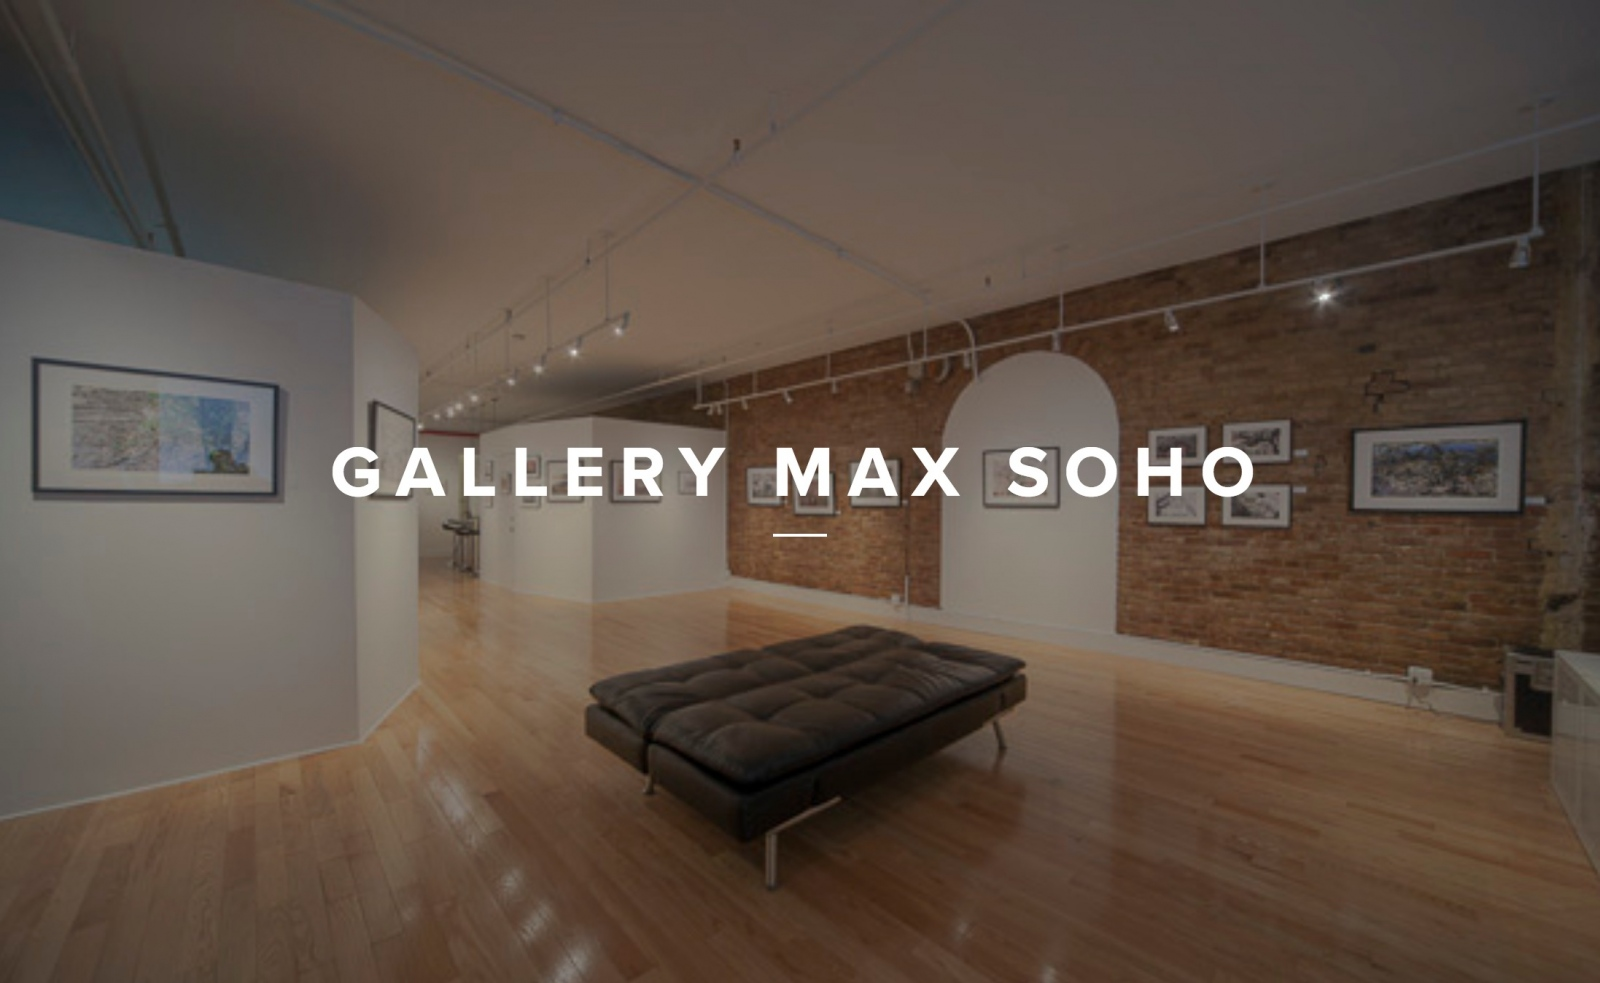 Photography image - Loading Michel-Leroy-Photo-GalleryMAX-SoHo.jpg